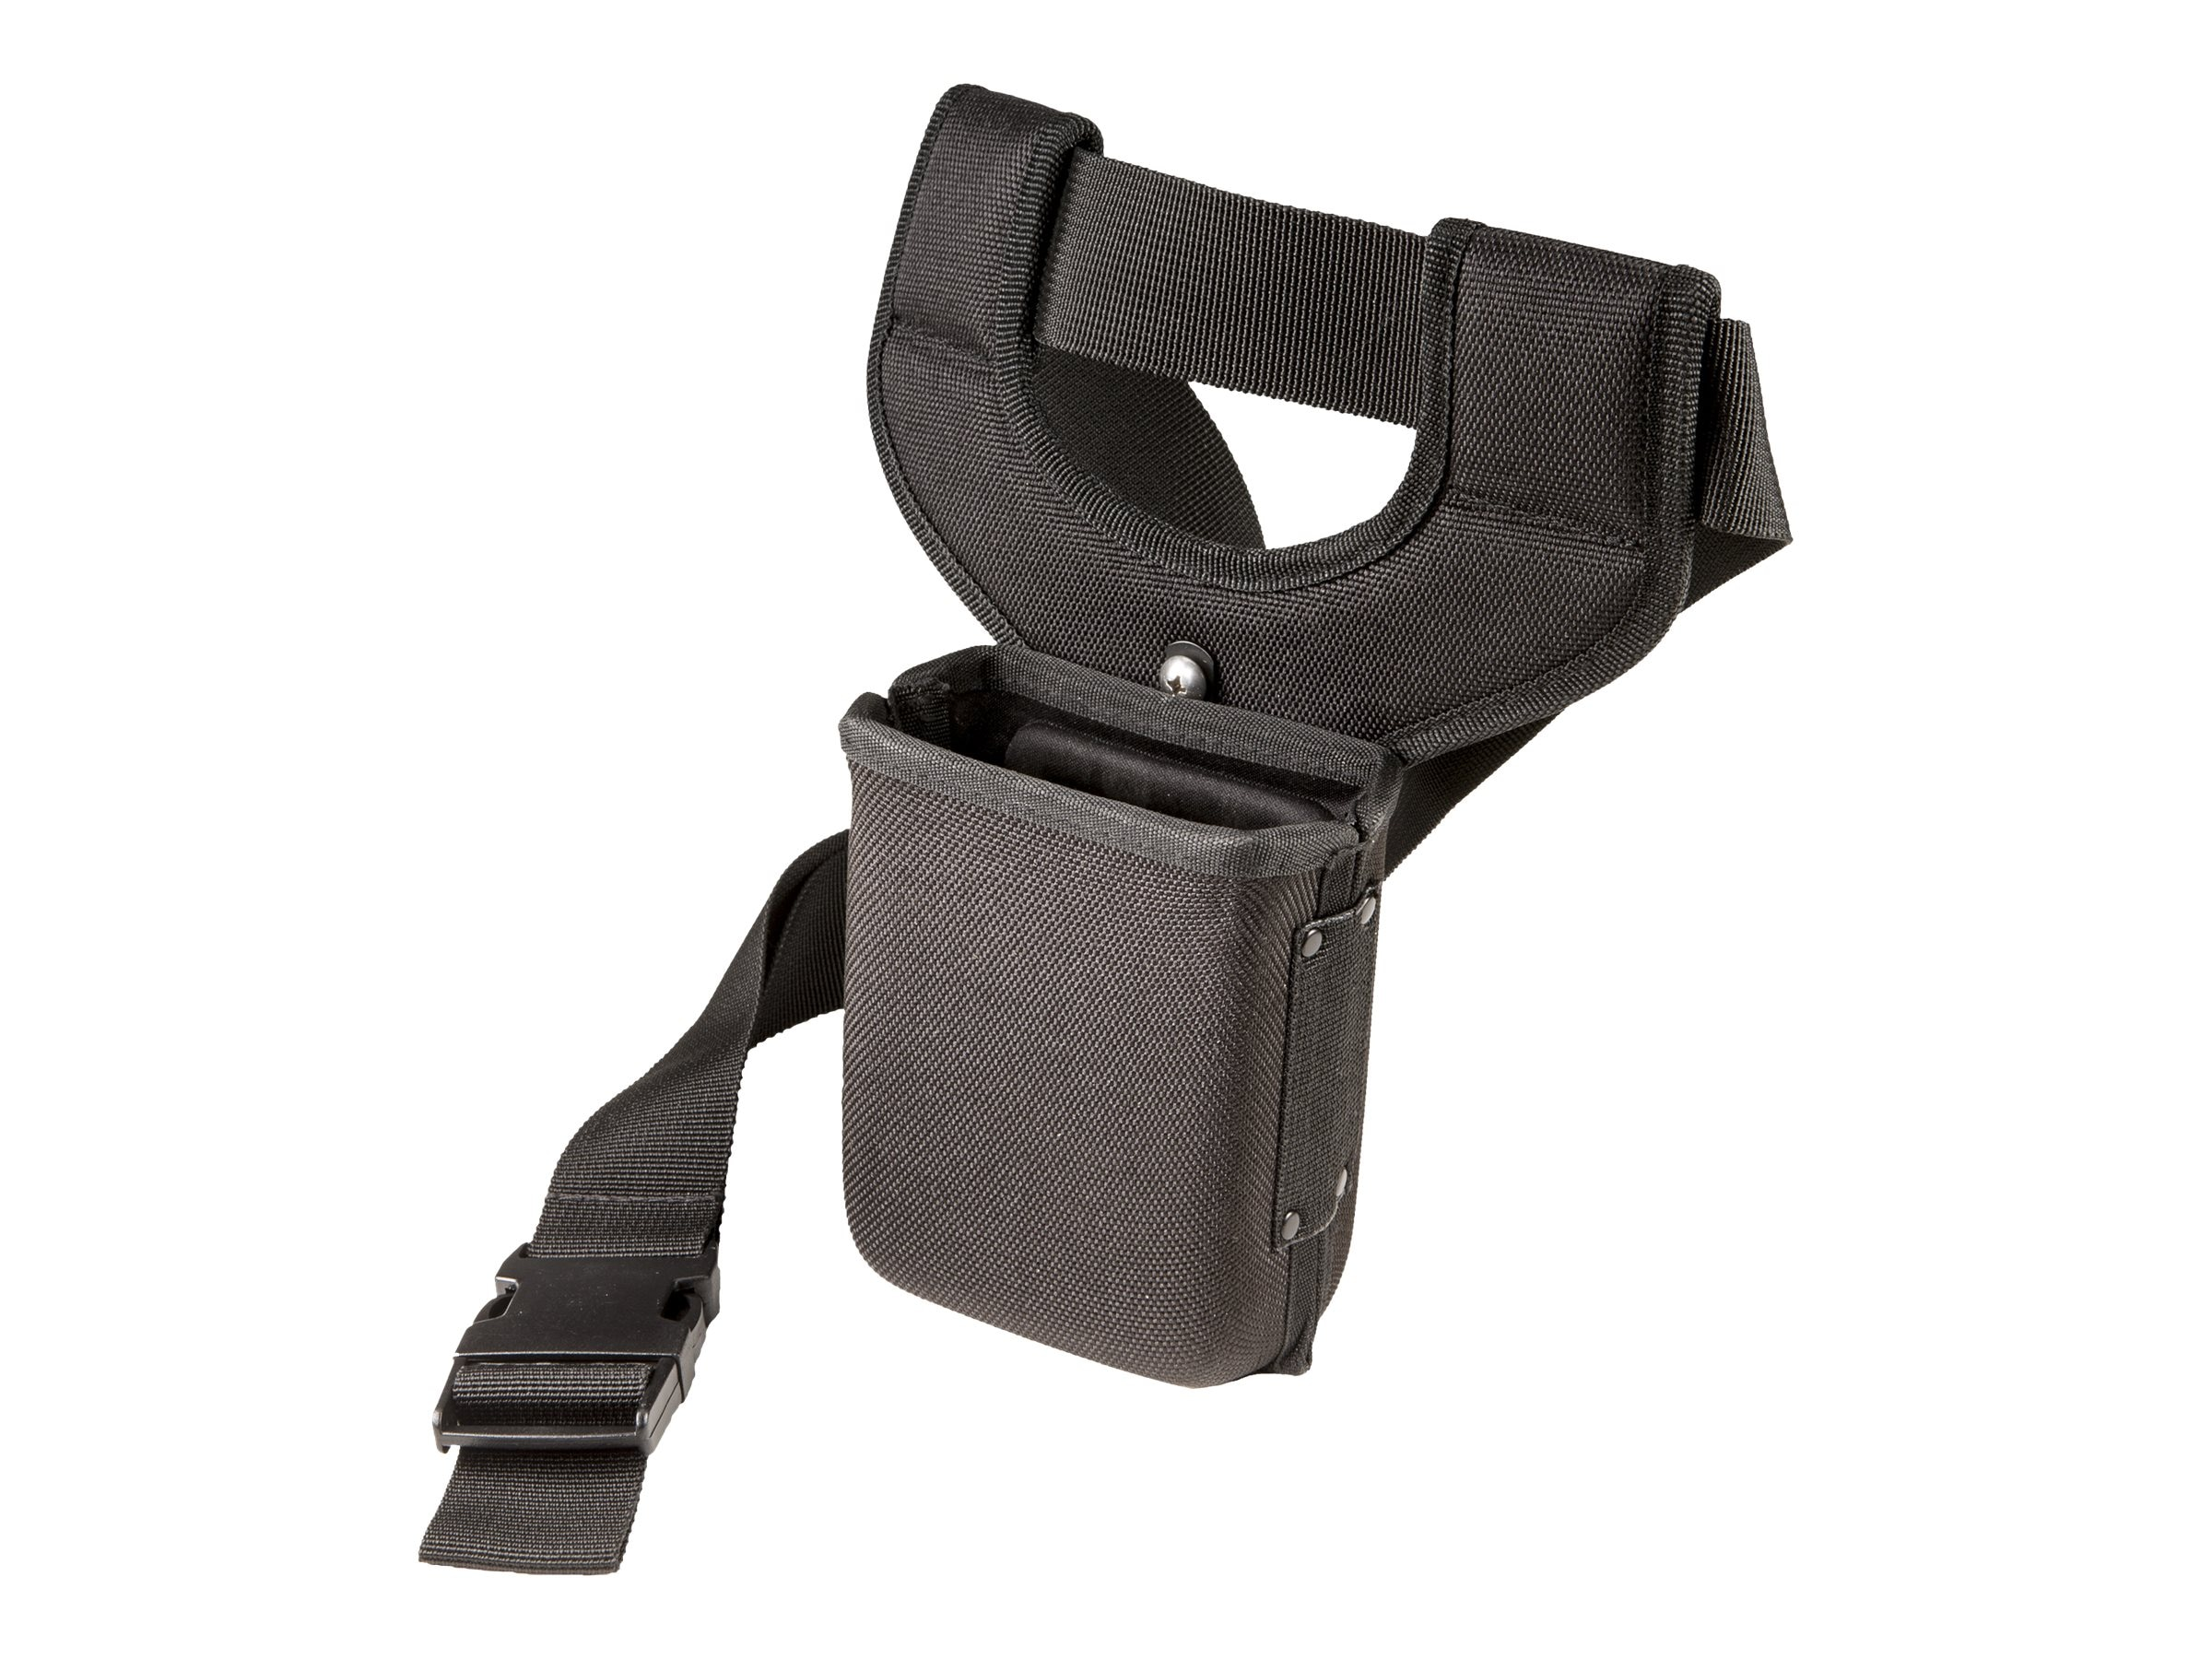 Intermec Holster W O Scan Handle for CK3R CK3X, 815-087-001